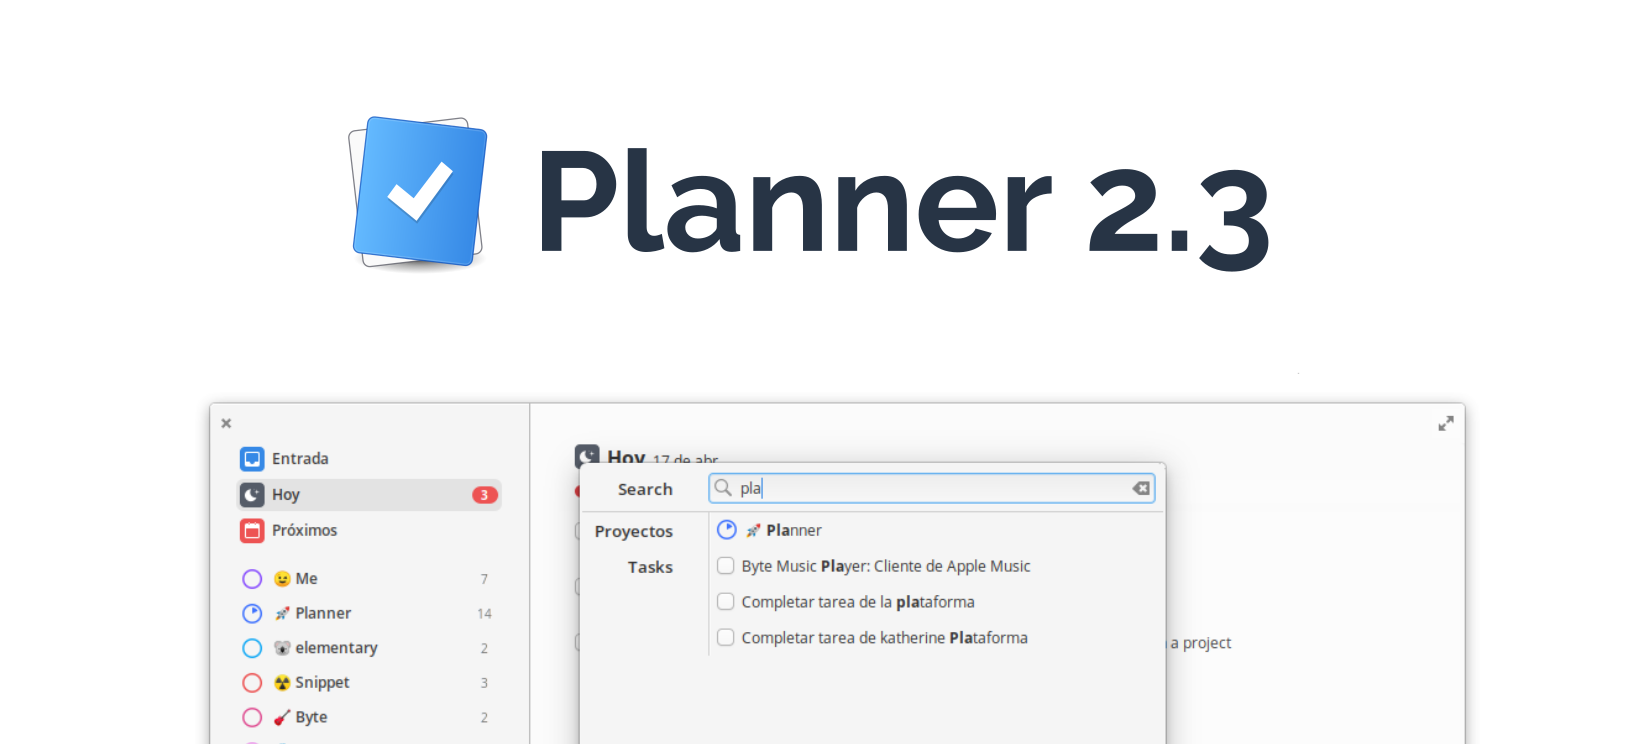 Hi everyone! Planner 2.3 is here